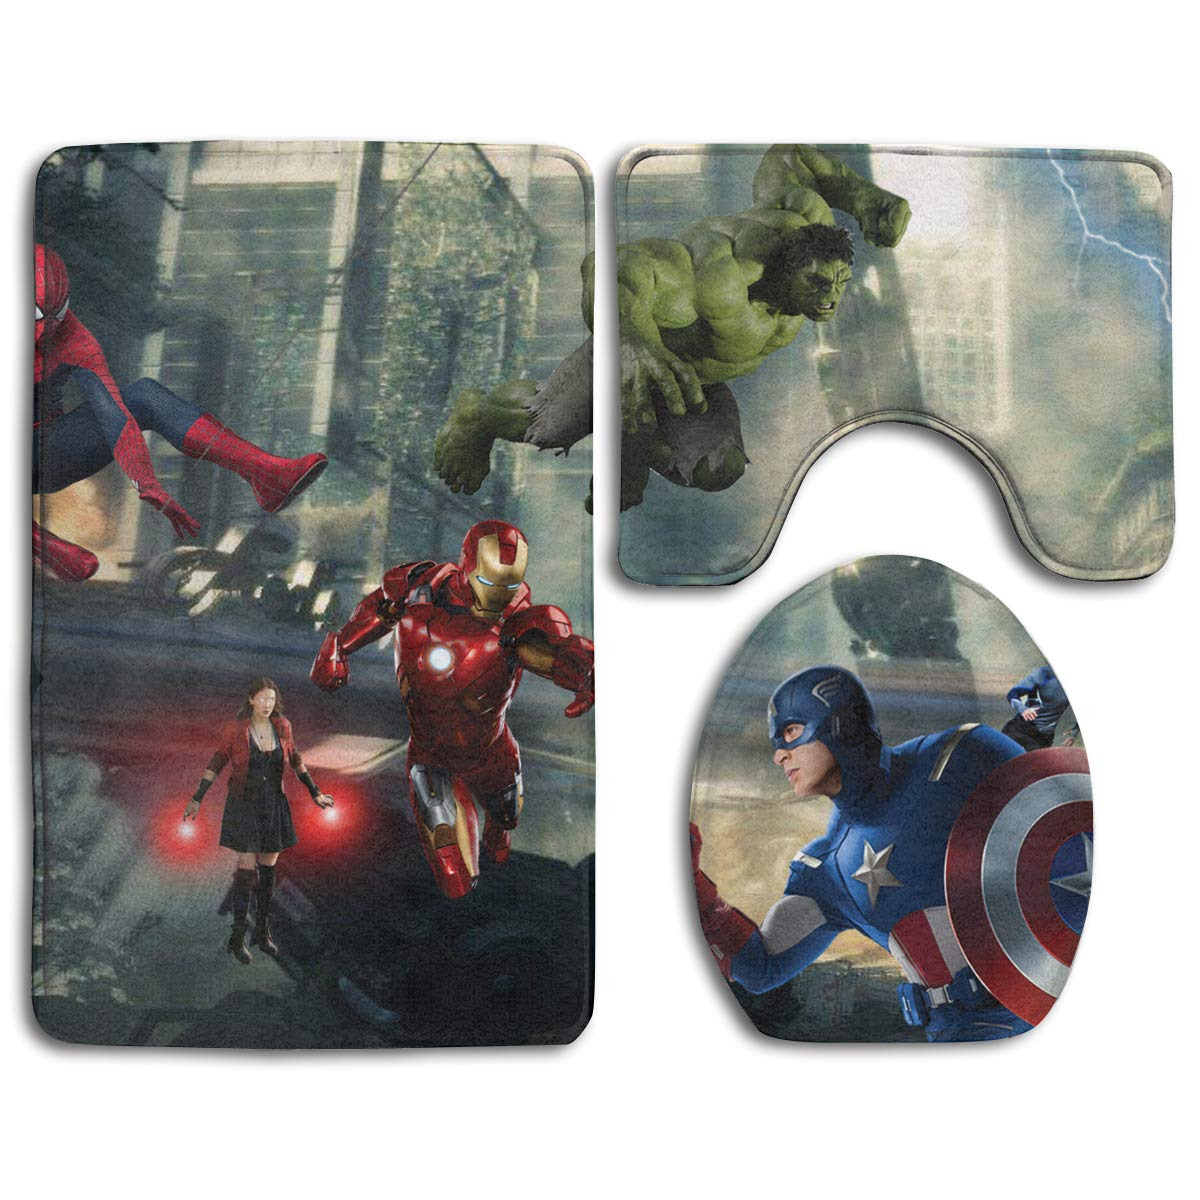 Avengers 3 Piece Bathroom Mats Set Toilet Floor Mats Set Non-Slip Toilet Bath Rugs Home Decor Printed Bathroom Carpets